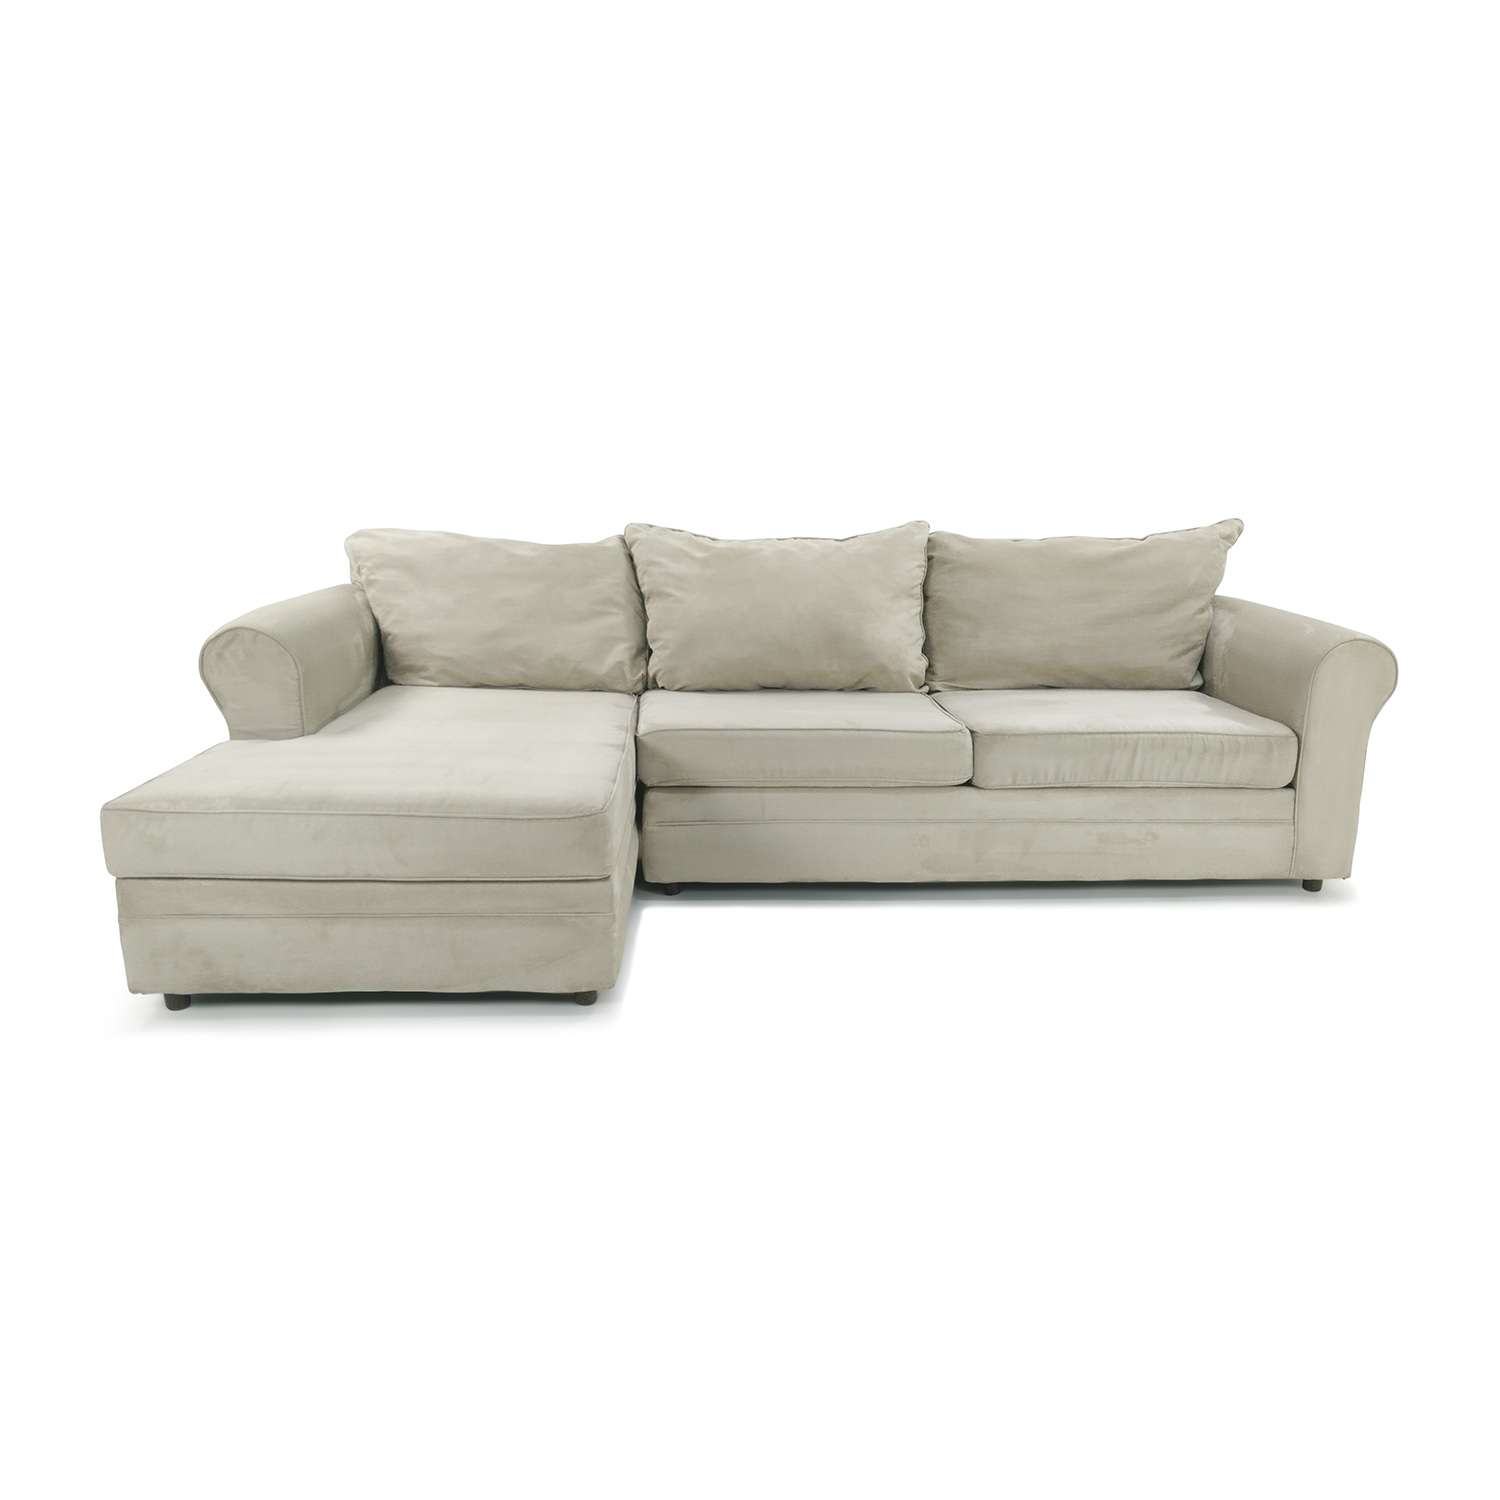 50 Off Bob S Discount Furniture Venus 2 Piece Sectional Sofas